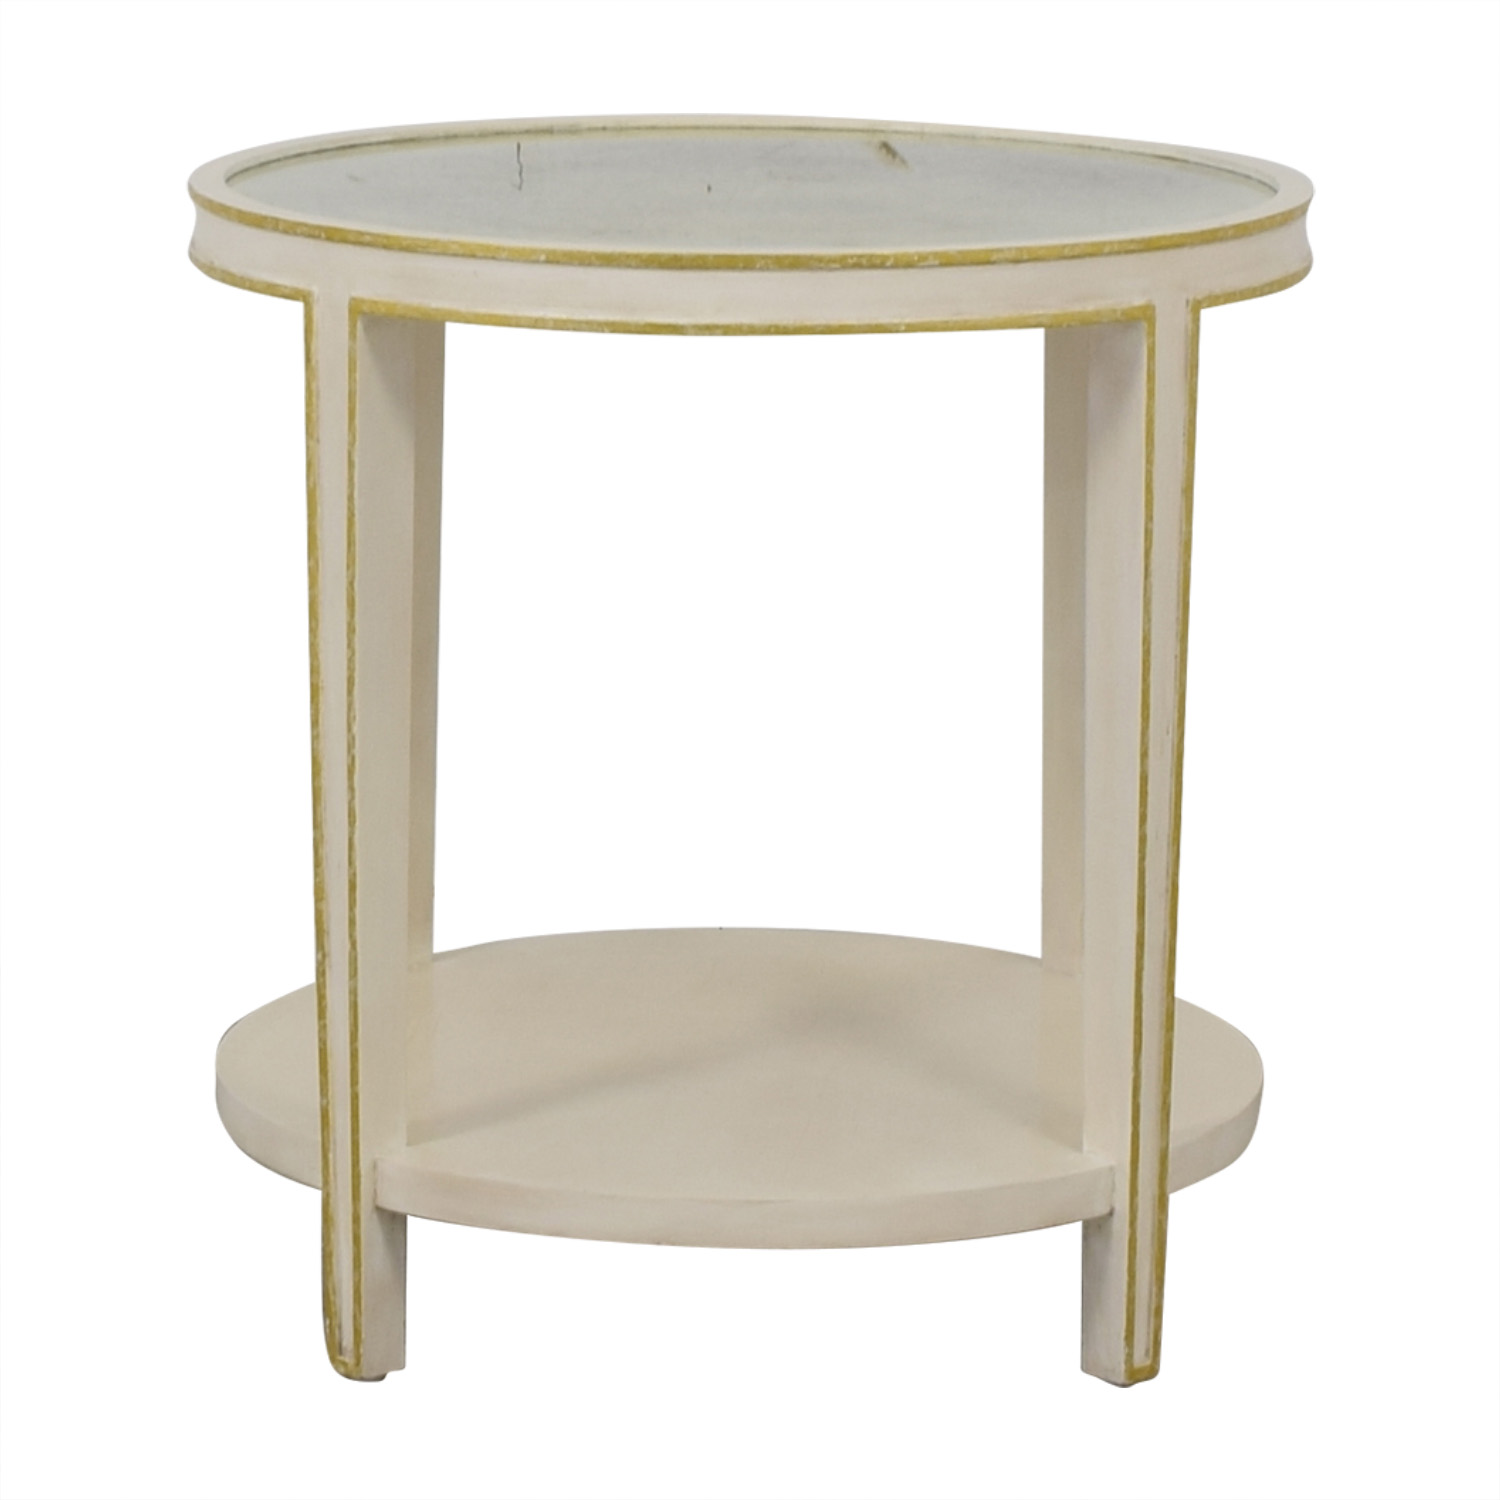 buy Oly Studio Christine Tall Round Side Table in Antiqued White Oly Studio Tables